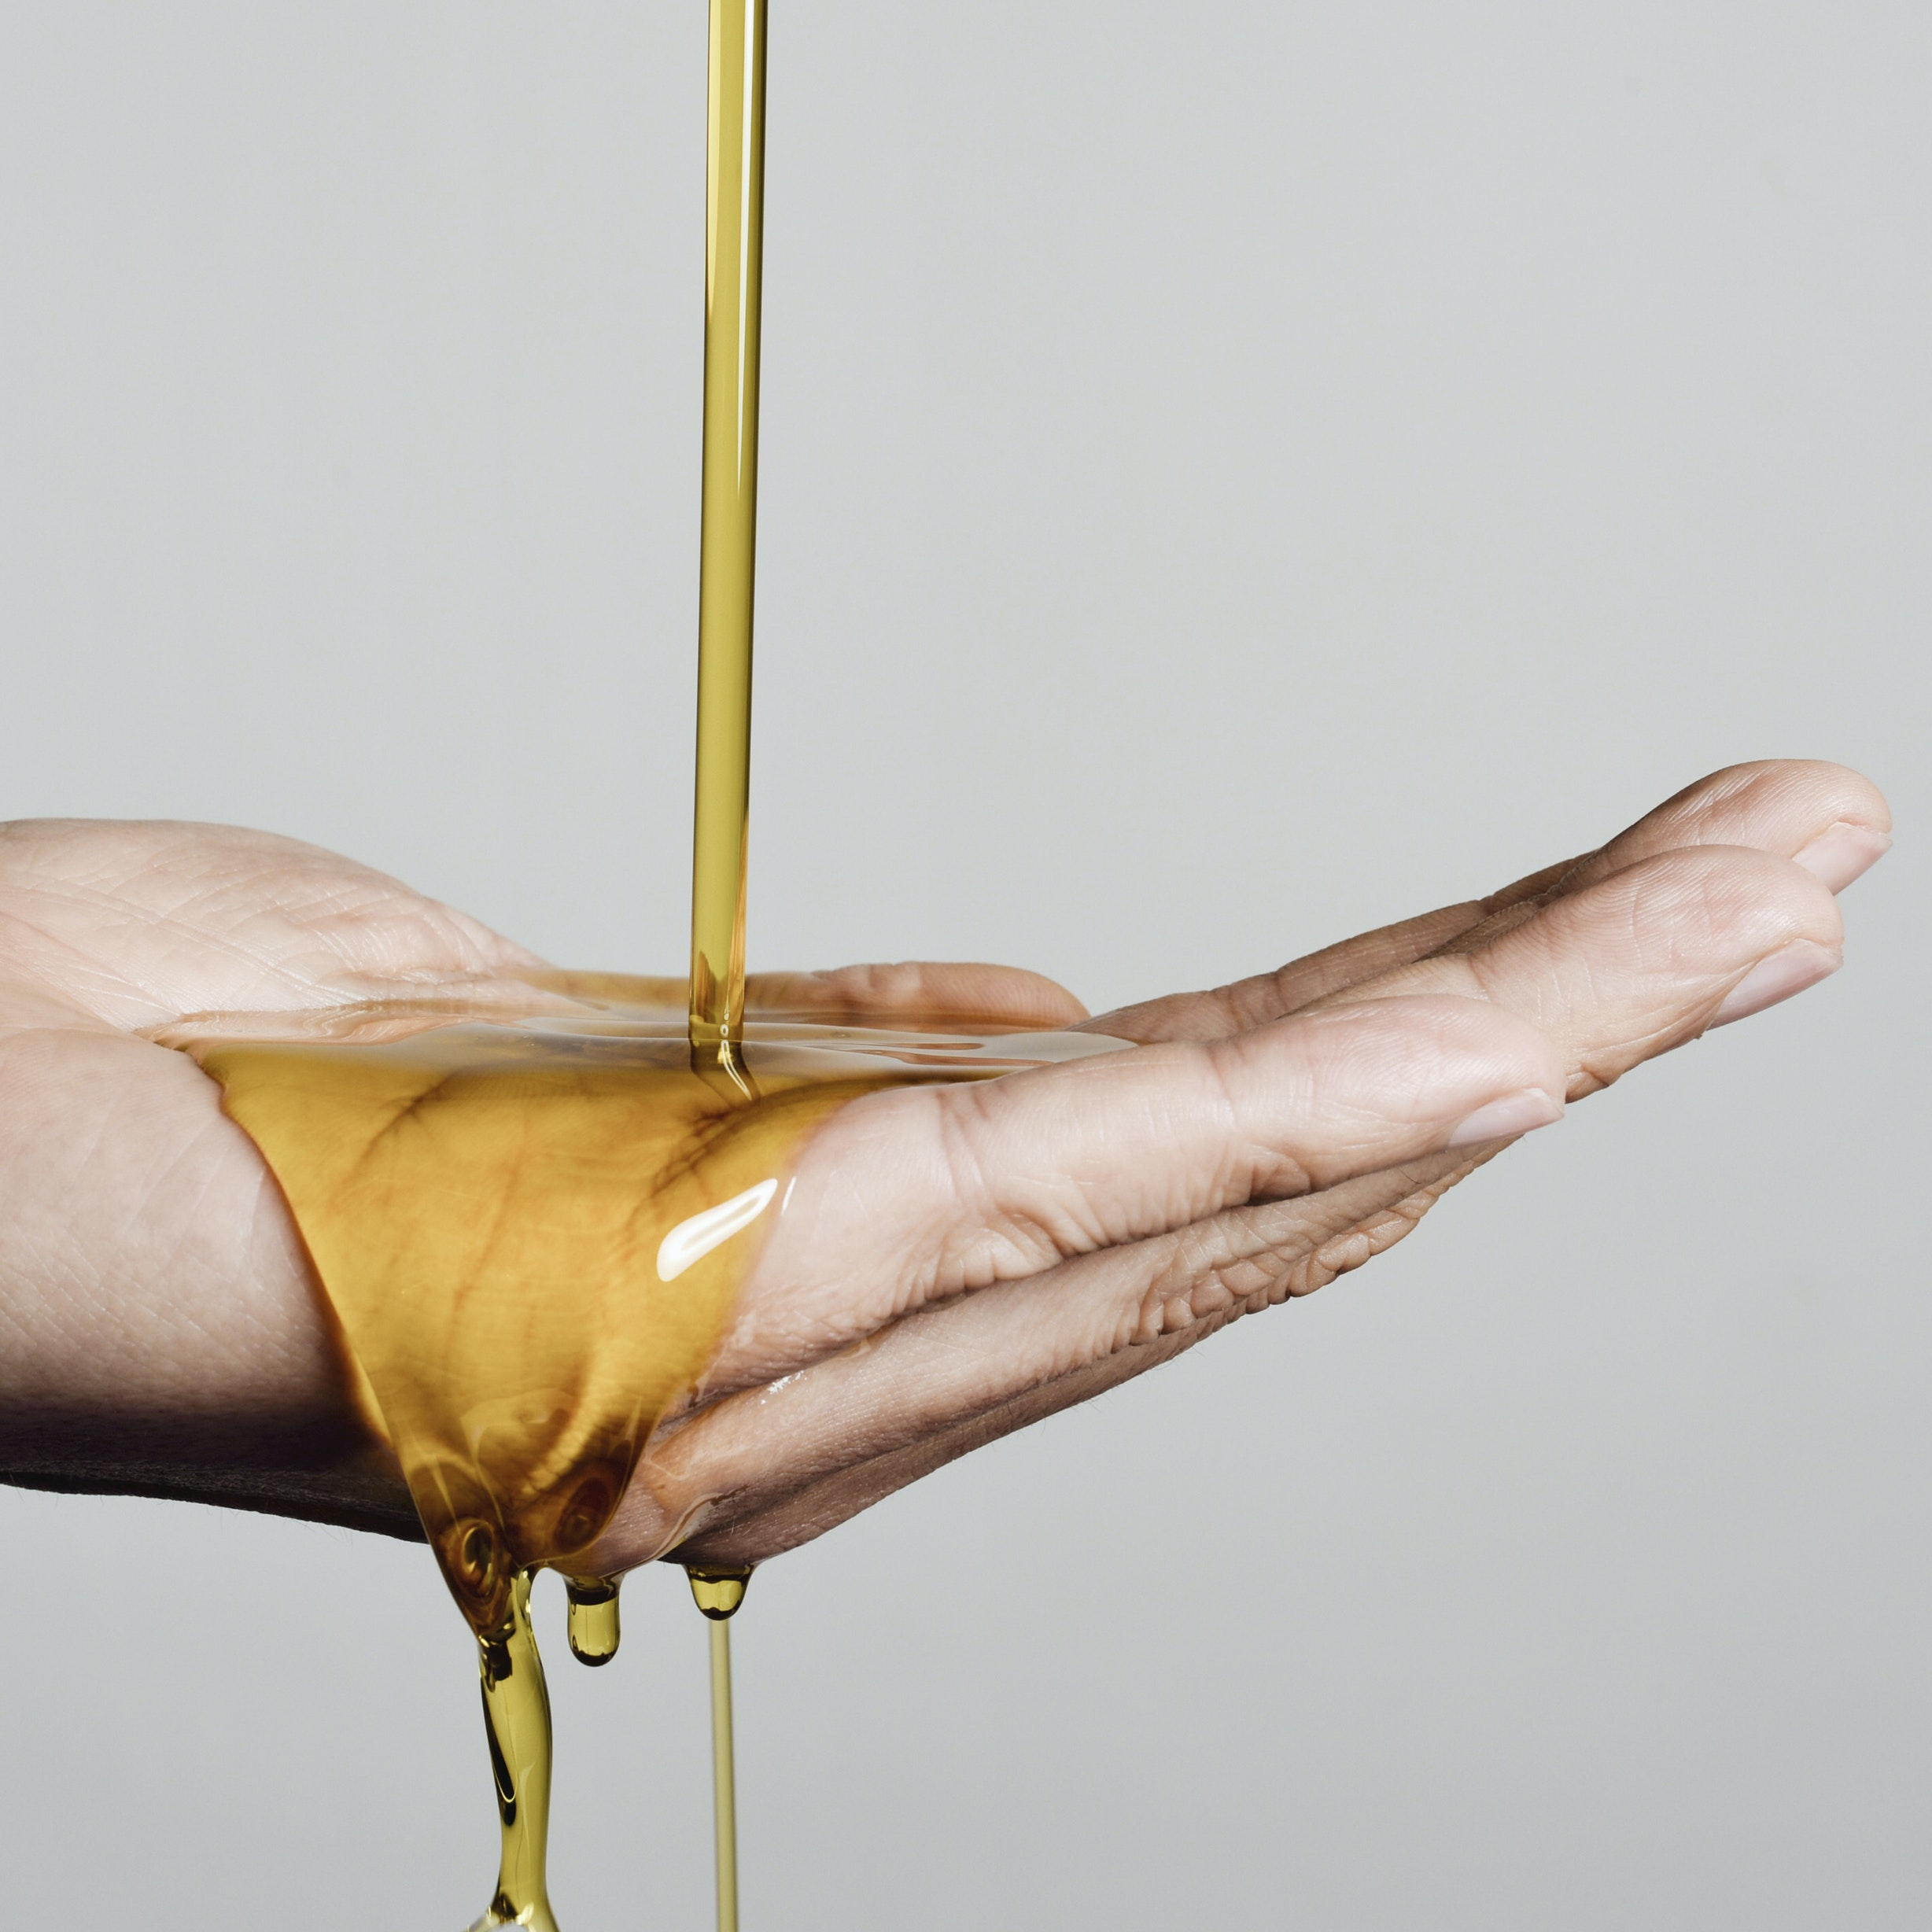 Desperate Times Call For Desperate Measures: How to DIY a Bikini Wax